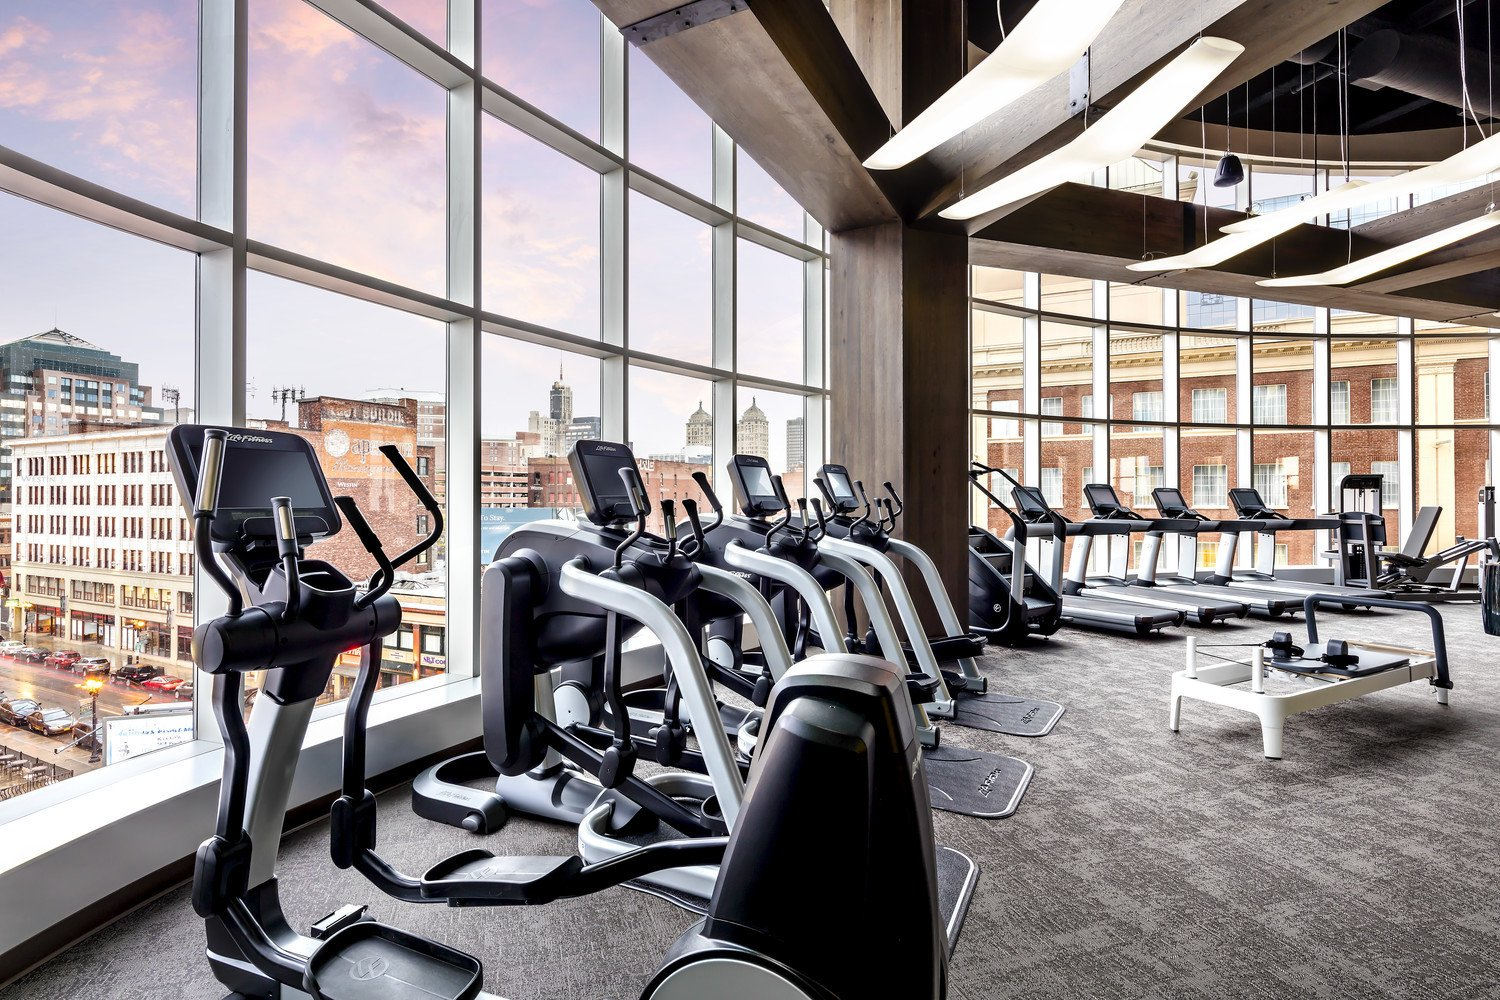 Each Westin's fitness center is designed to reflect the hotel's location.